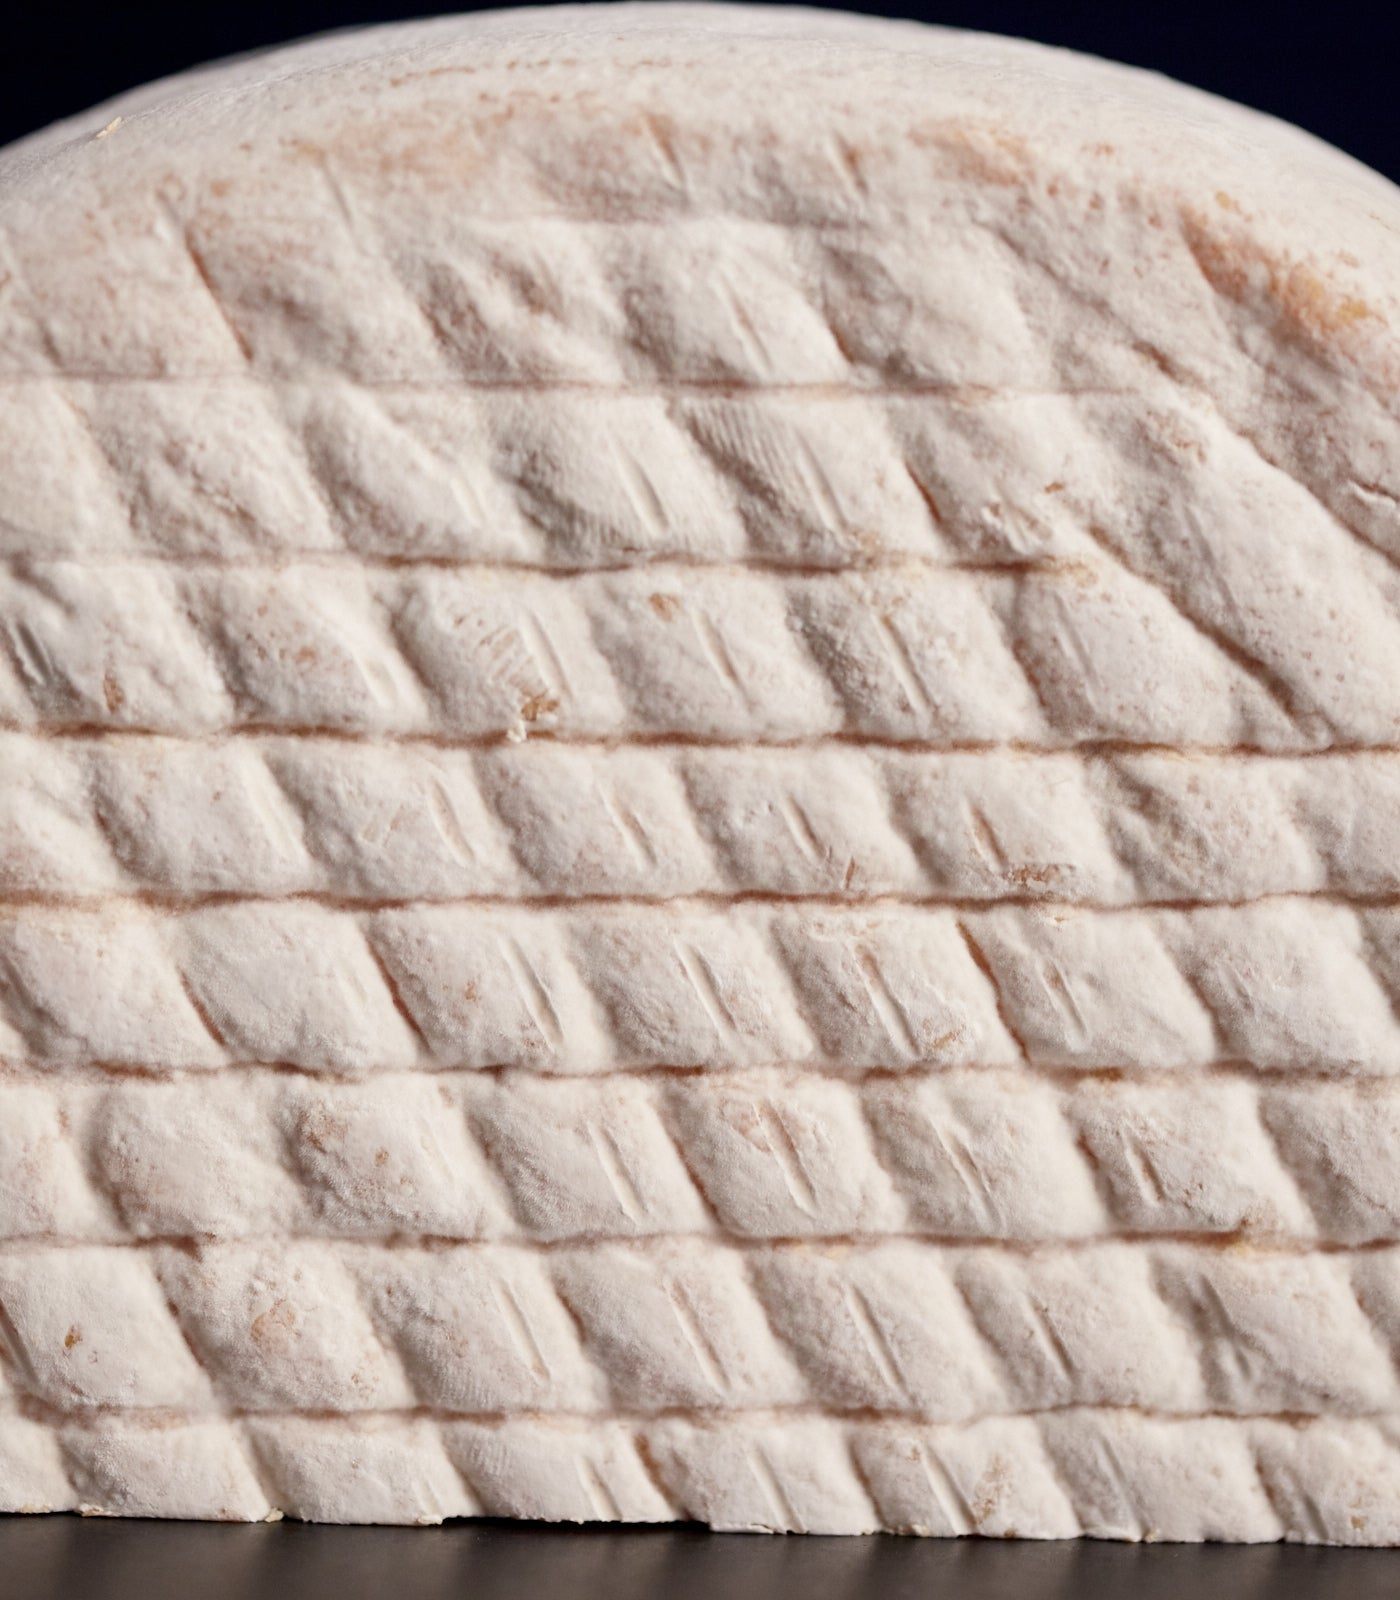 Close up of a Gubbeen semi-soft washed rind cow's milk cheese, showing the patterned rind